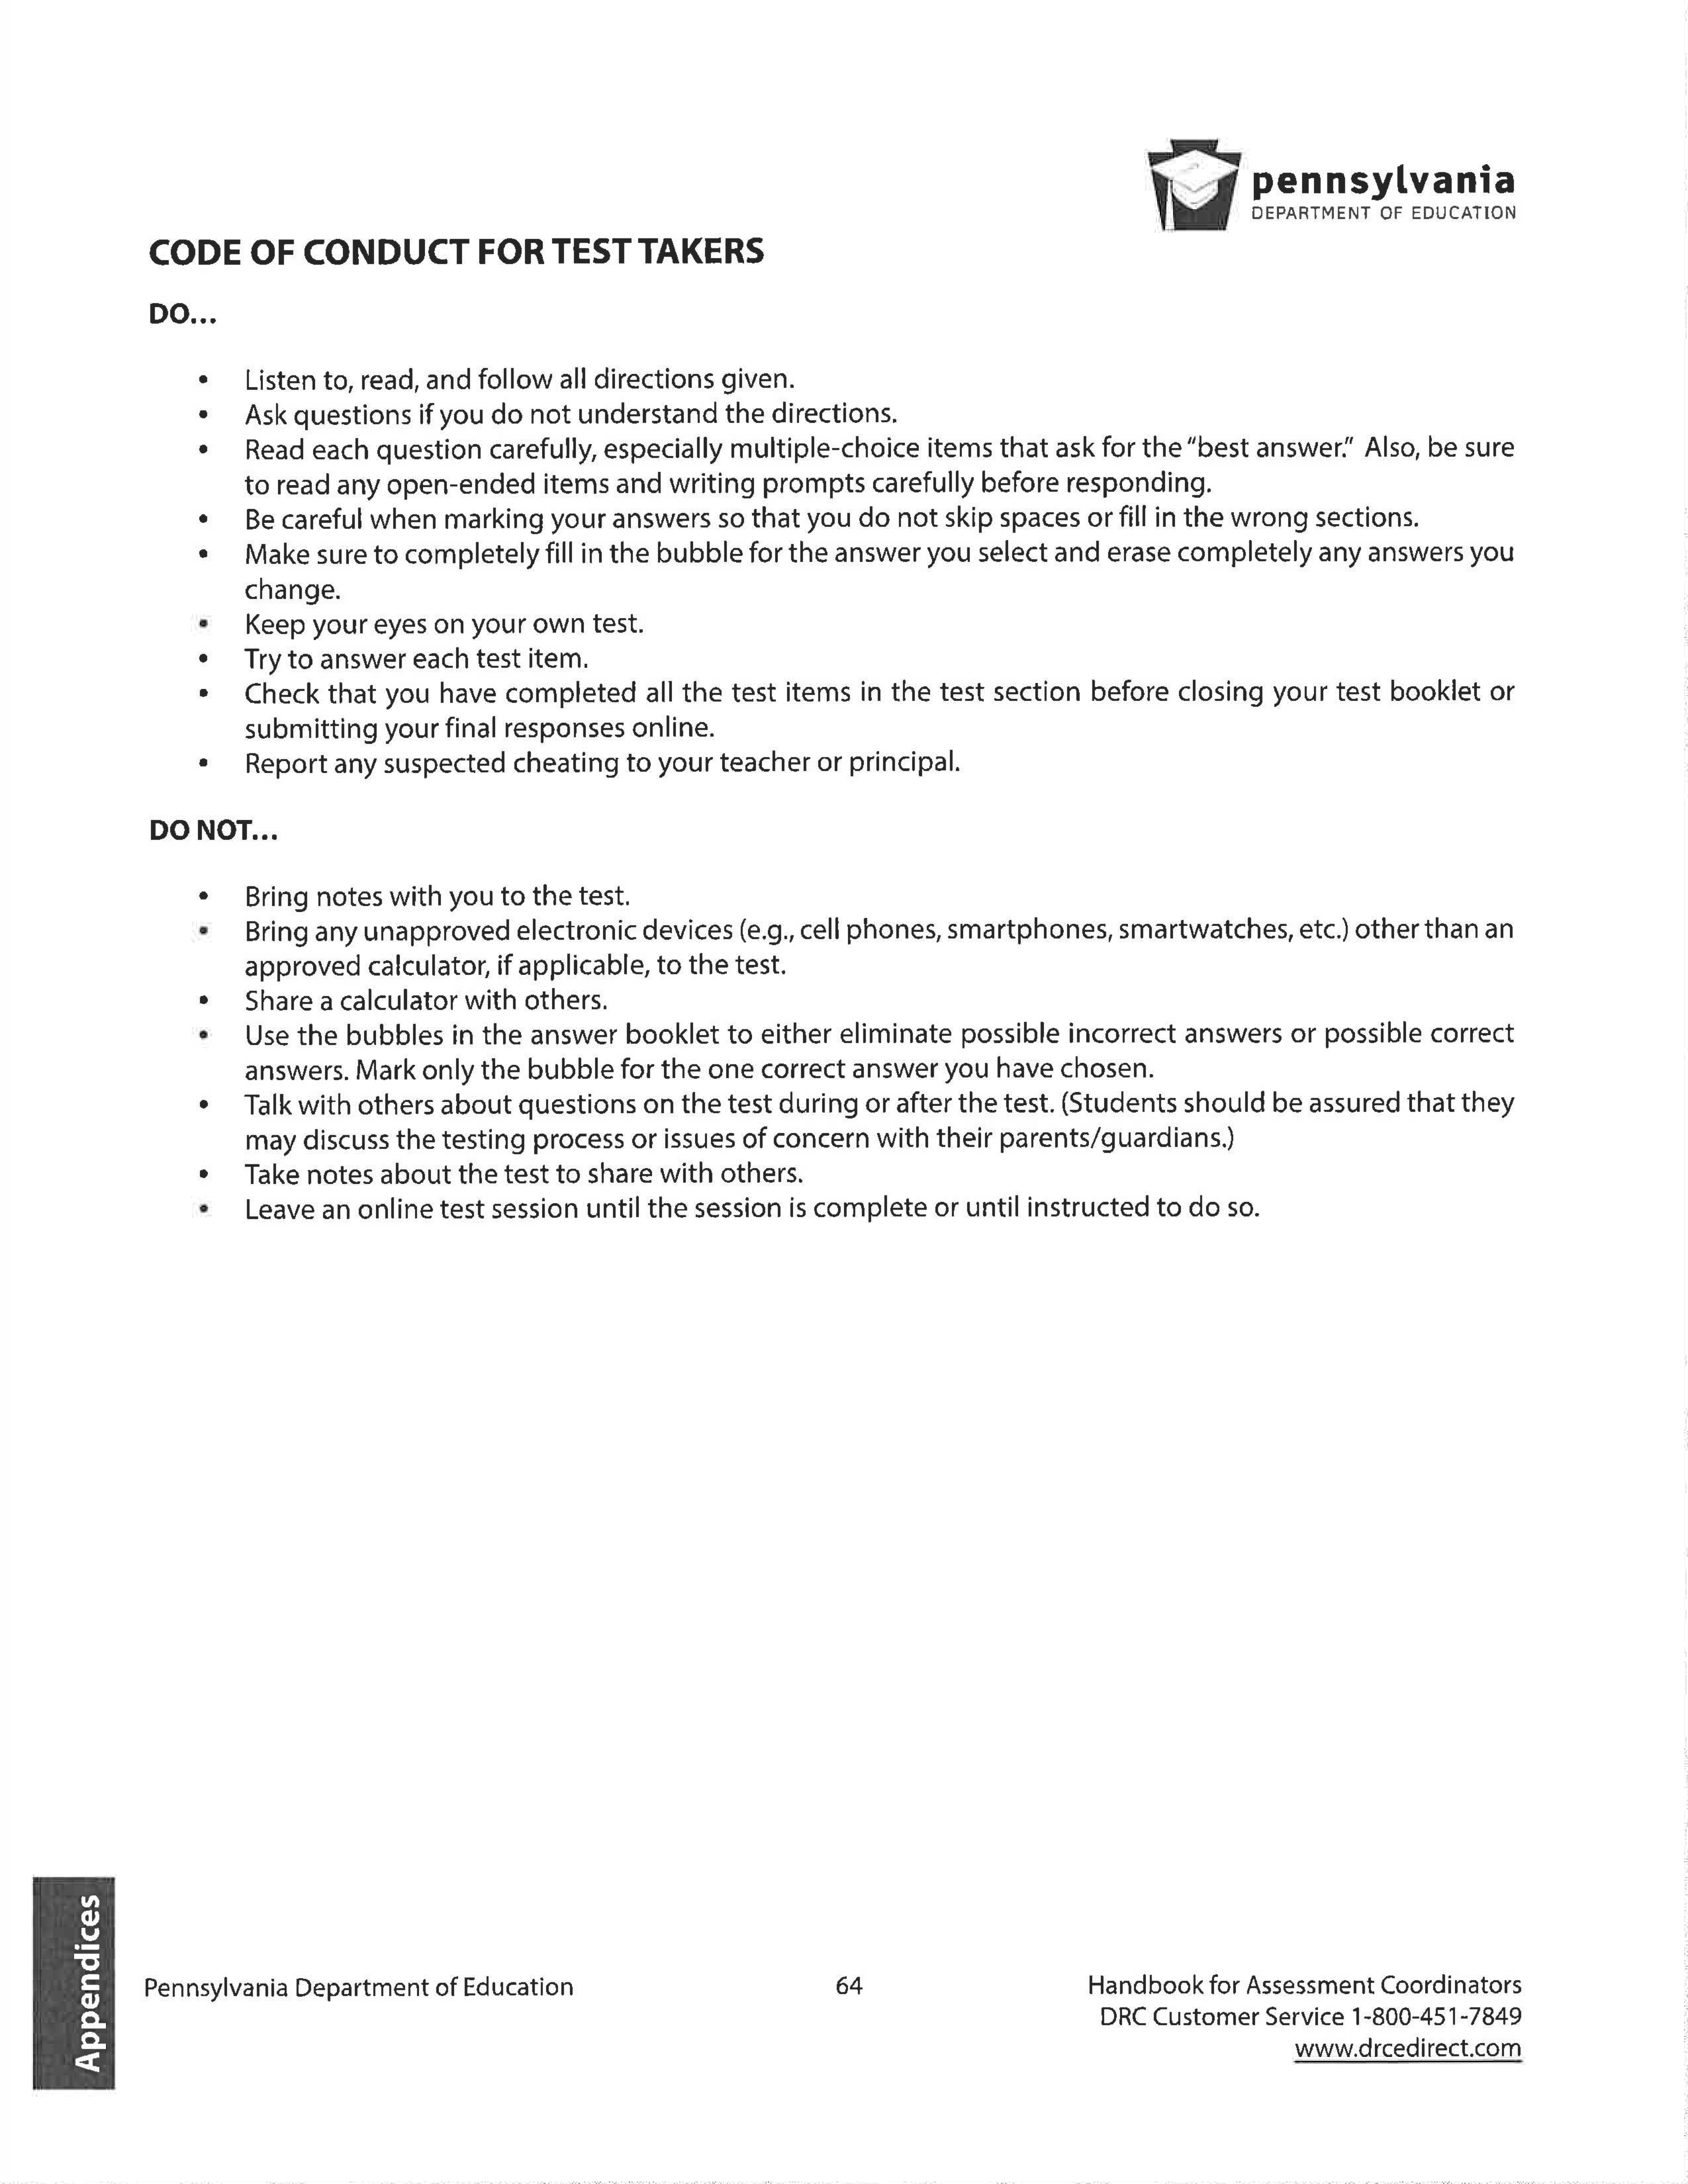 PSSA Code of Conduct for test takers